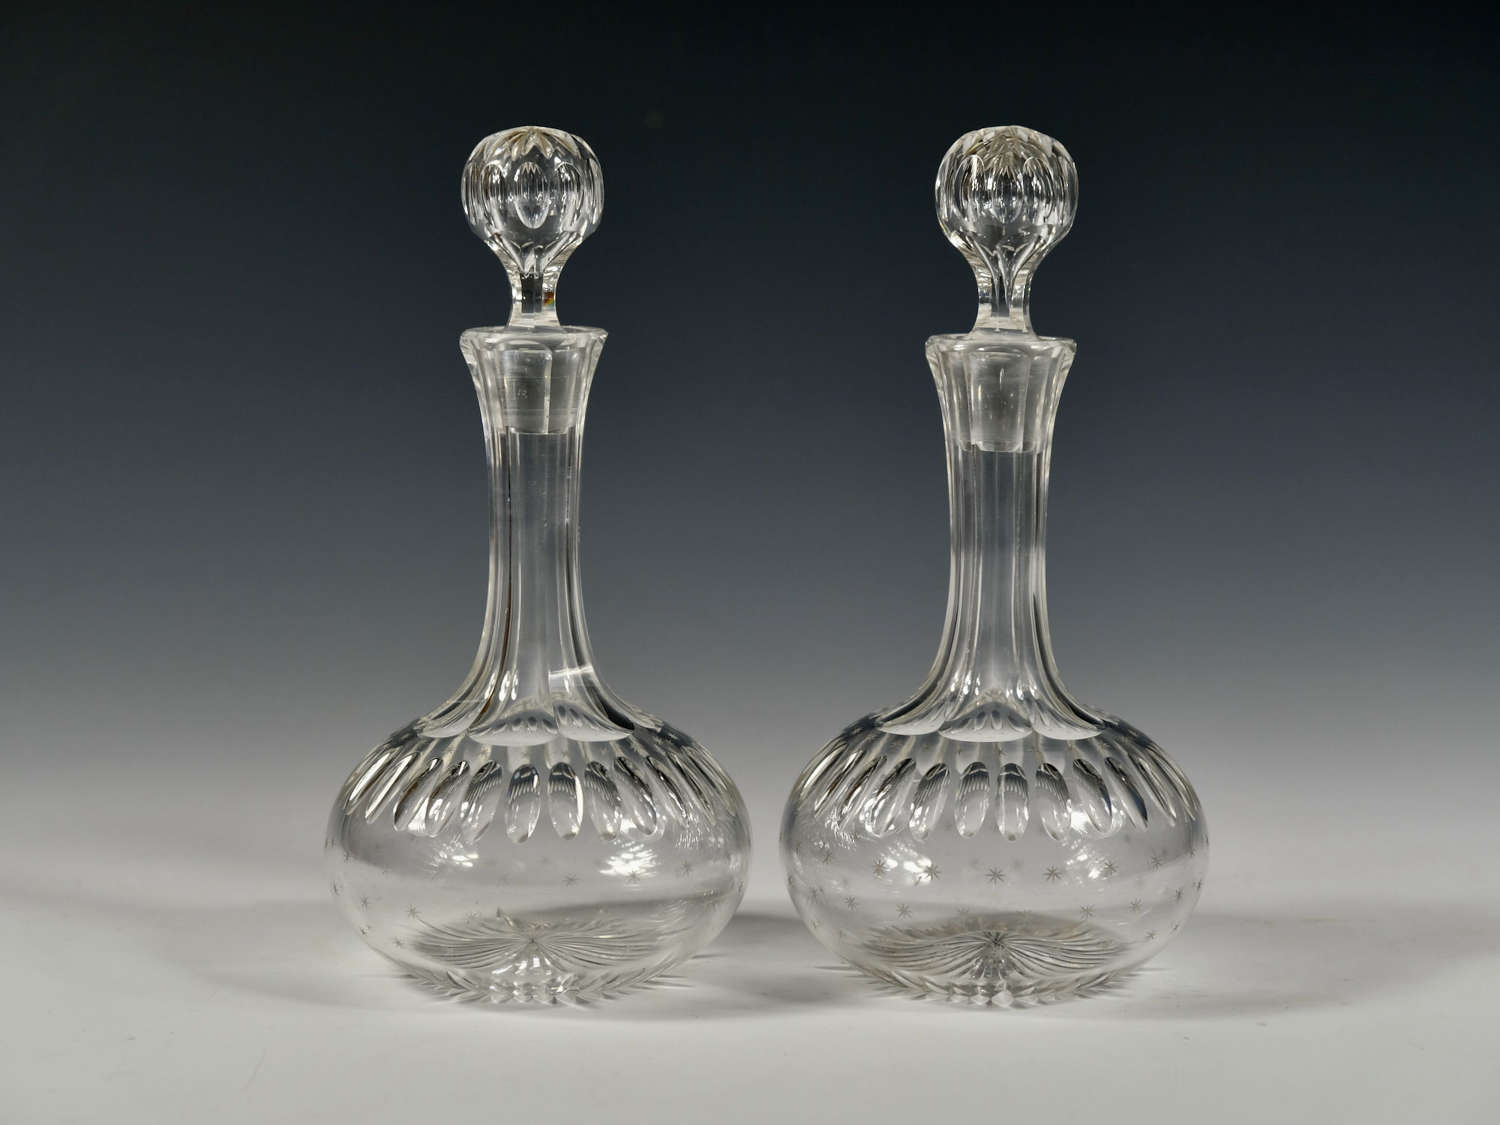 Pair of shaft and globe liqueur decanters C1880